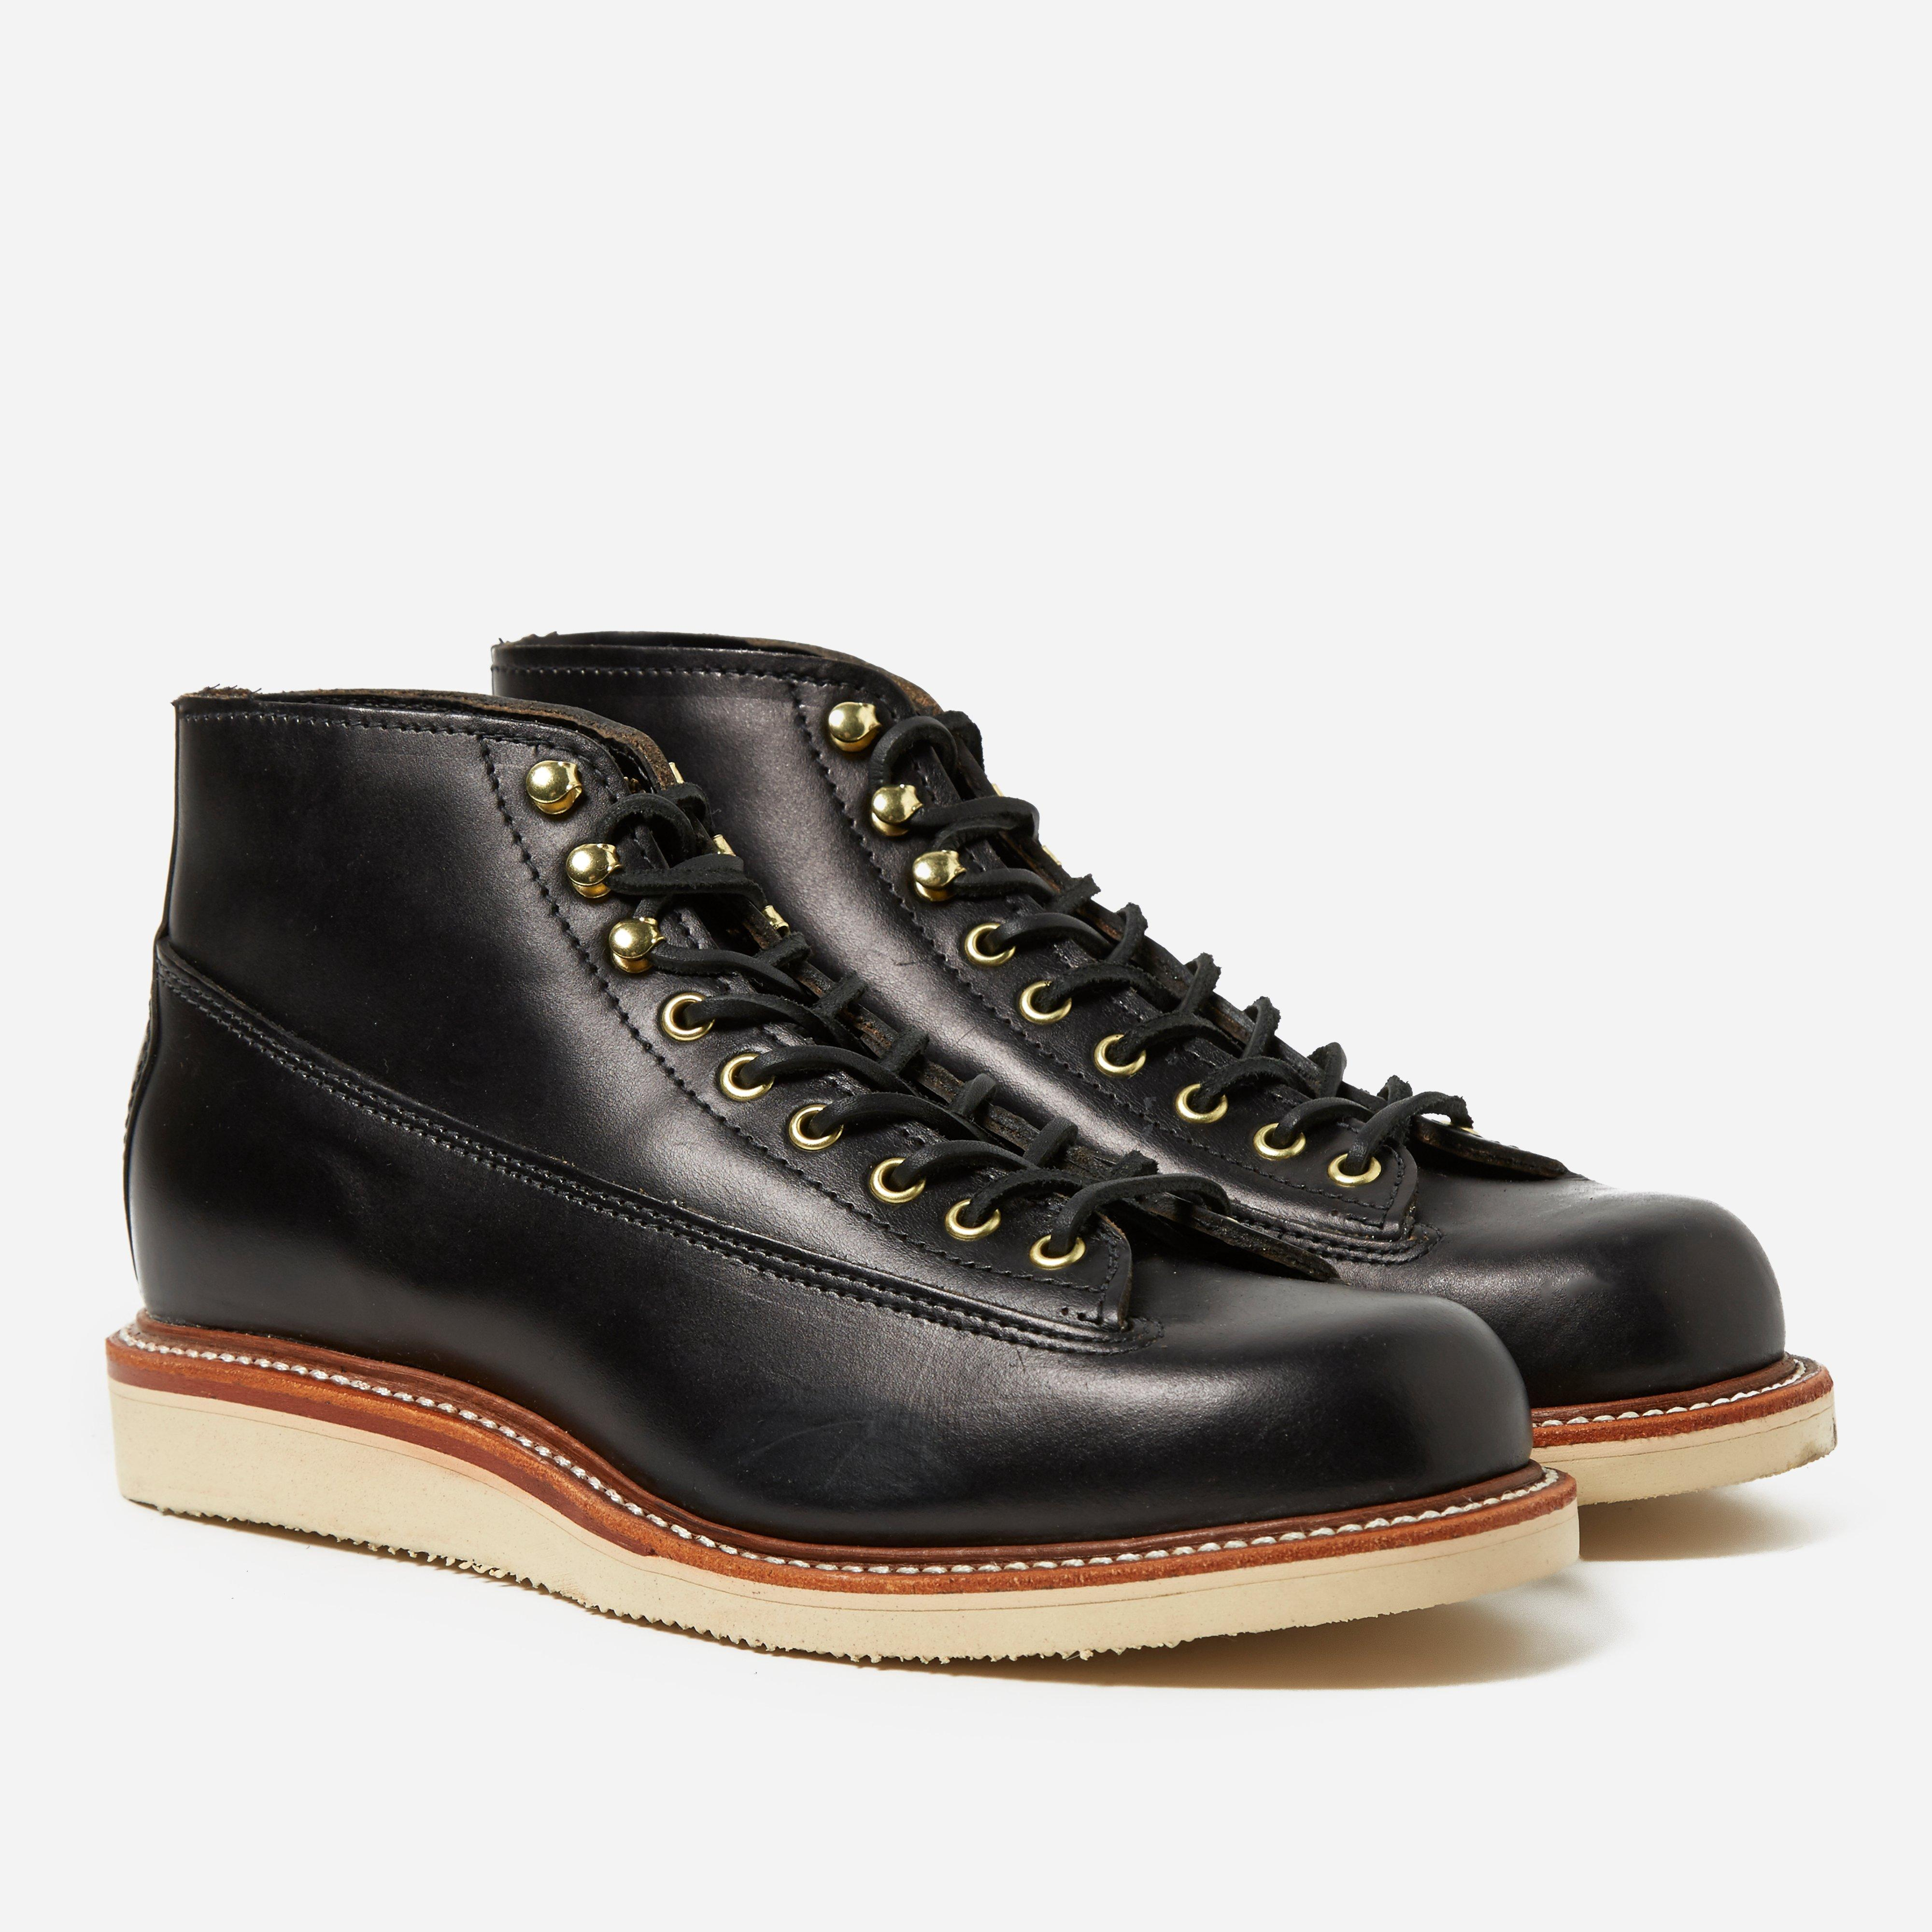 "Chippewa 1958 5"" Original Lace To Toe Boot"